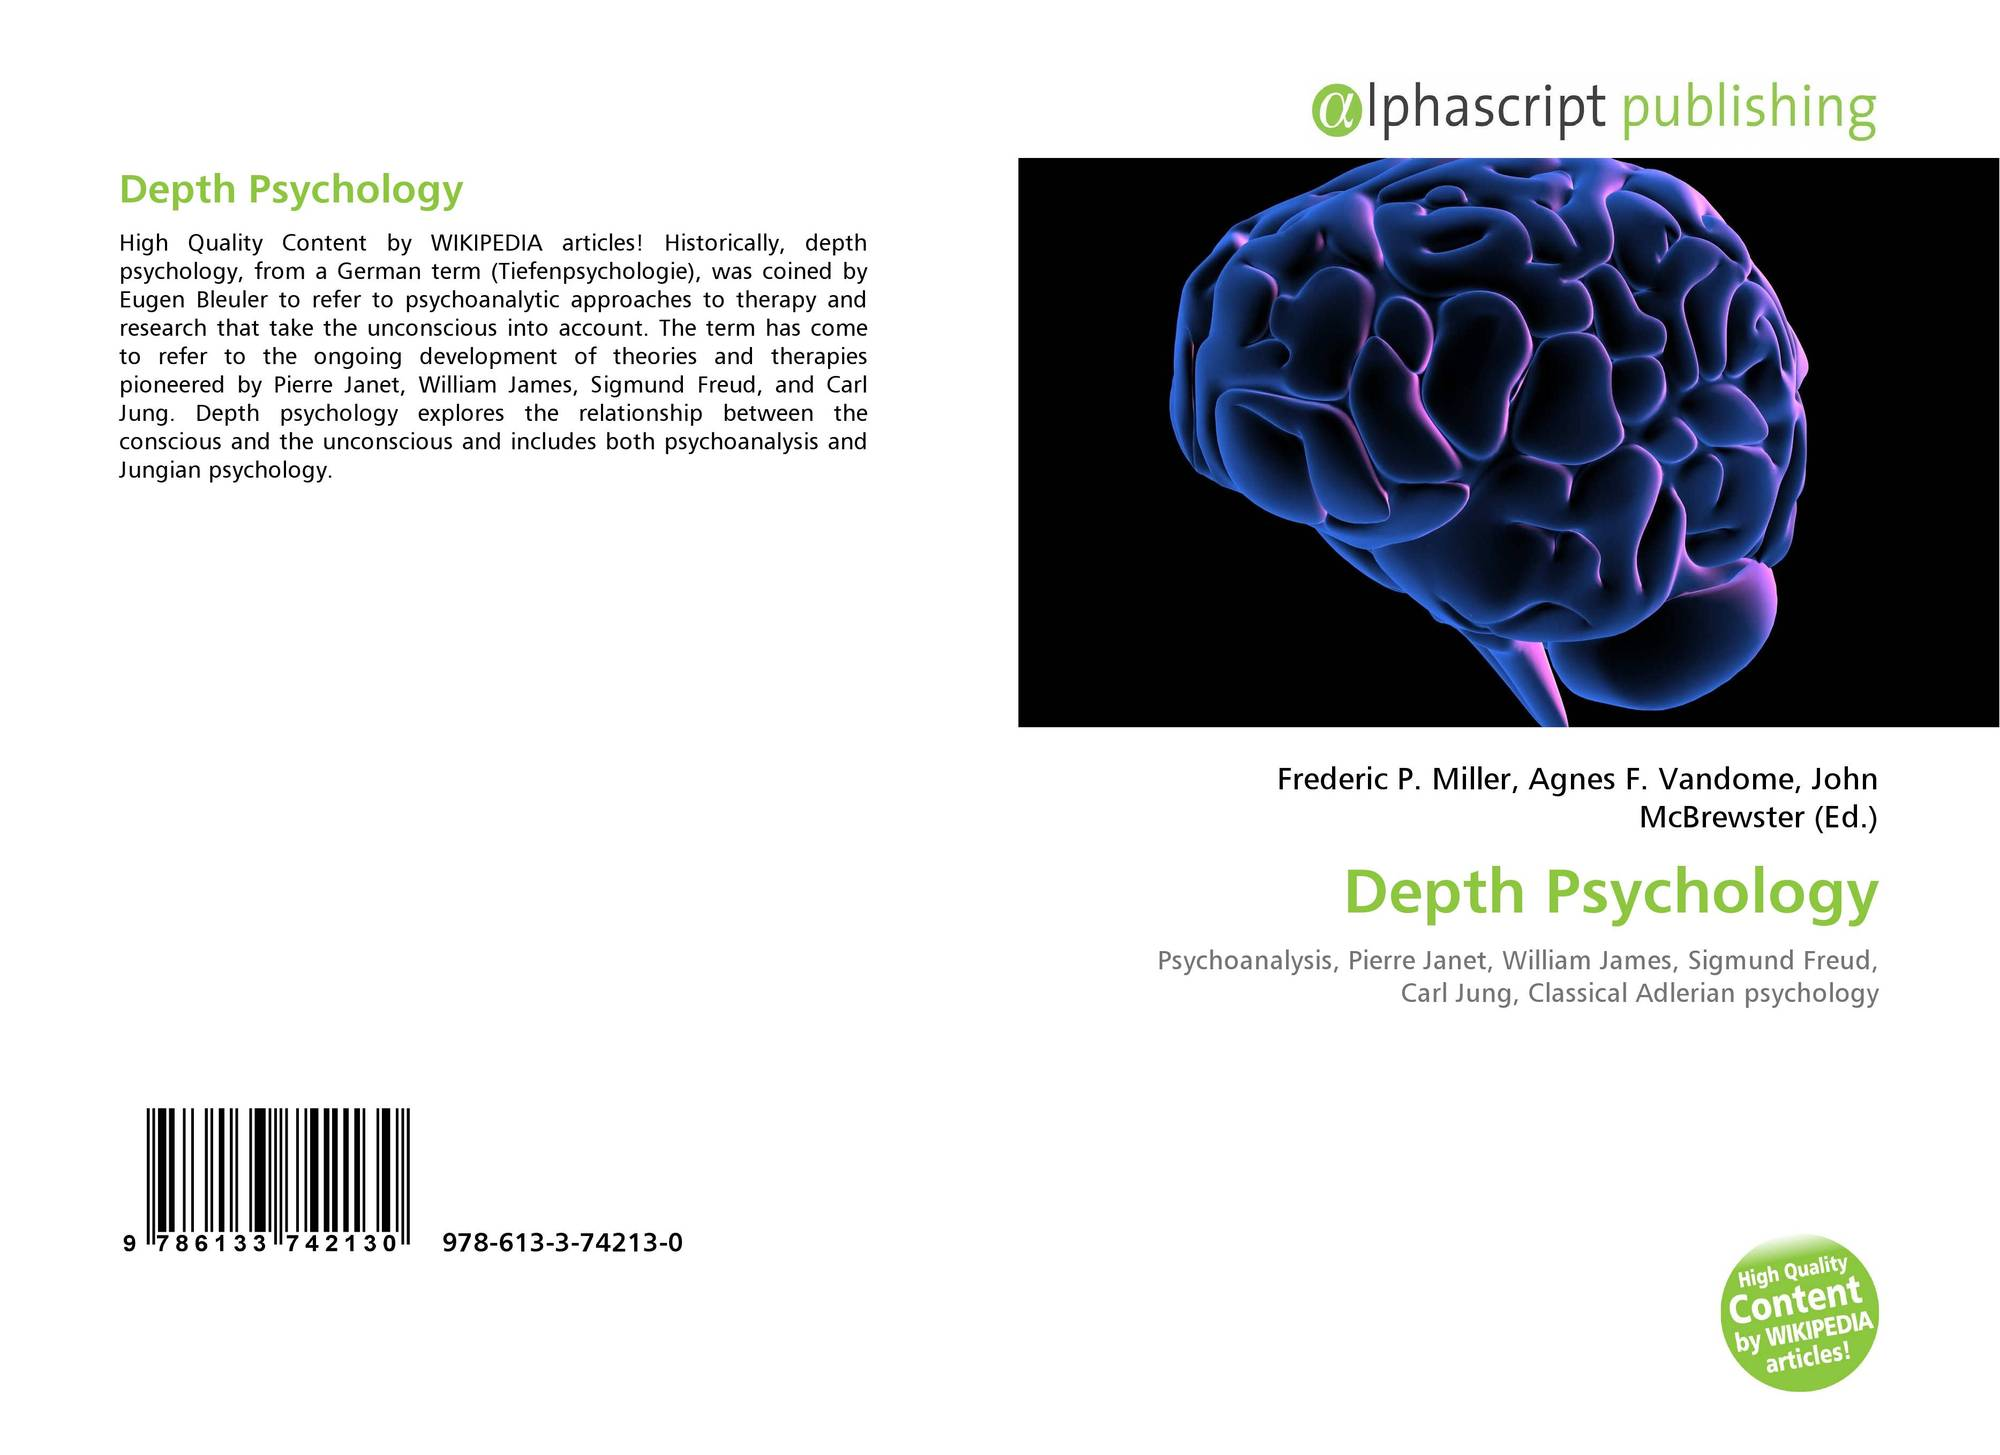 an analysis of psychology depth of processing and the self reference effects A t beck's cognitive therapy (ct) has made a substantial contribution to current evidence-based cognitive behavioral therapy (cbt) for a variety of psychiatric disorders, most notably depression, anxiety, personality disorders, and, more recently, psychosis.